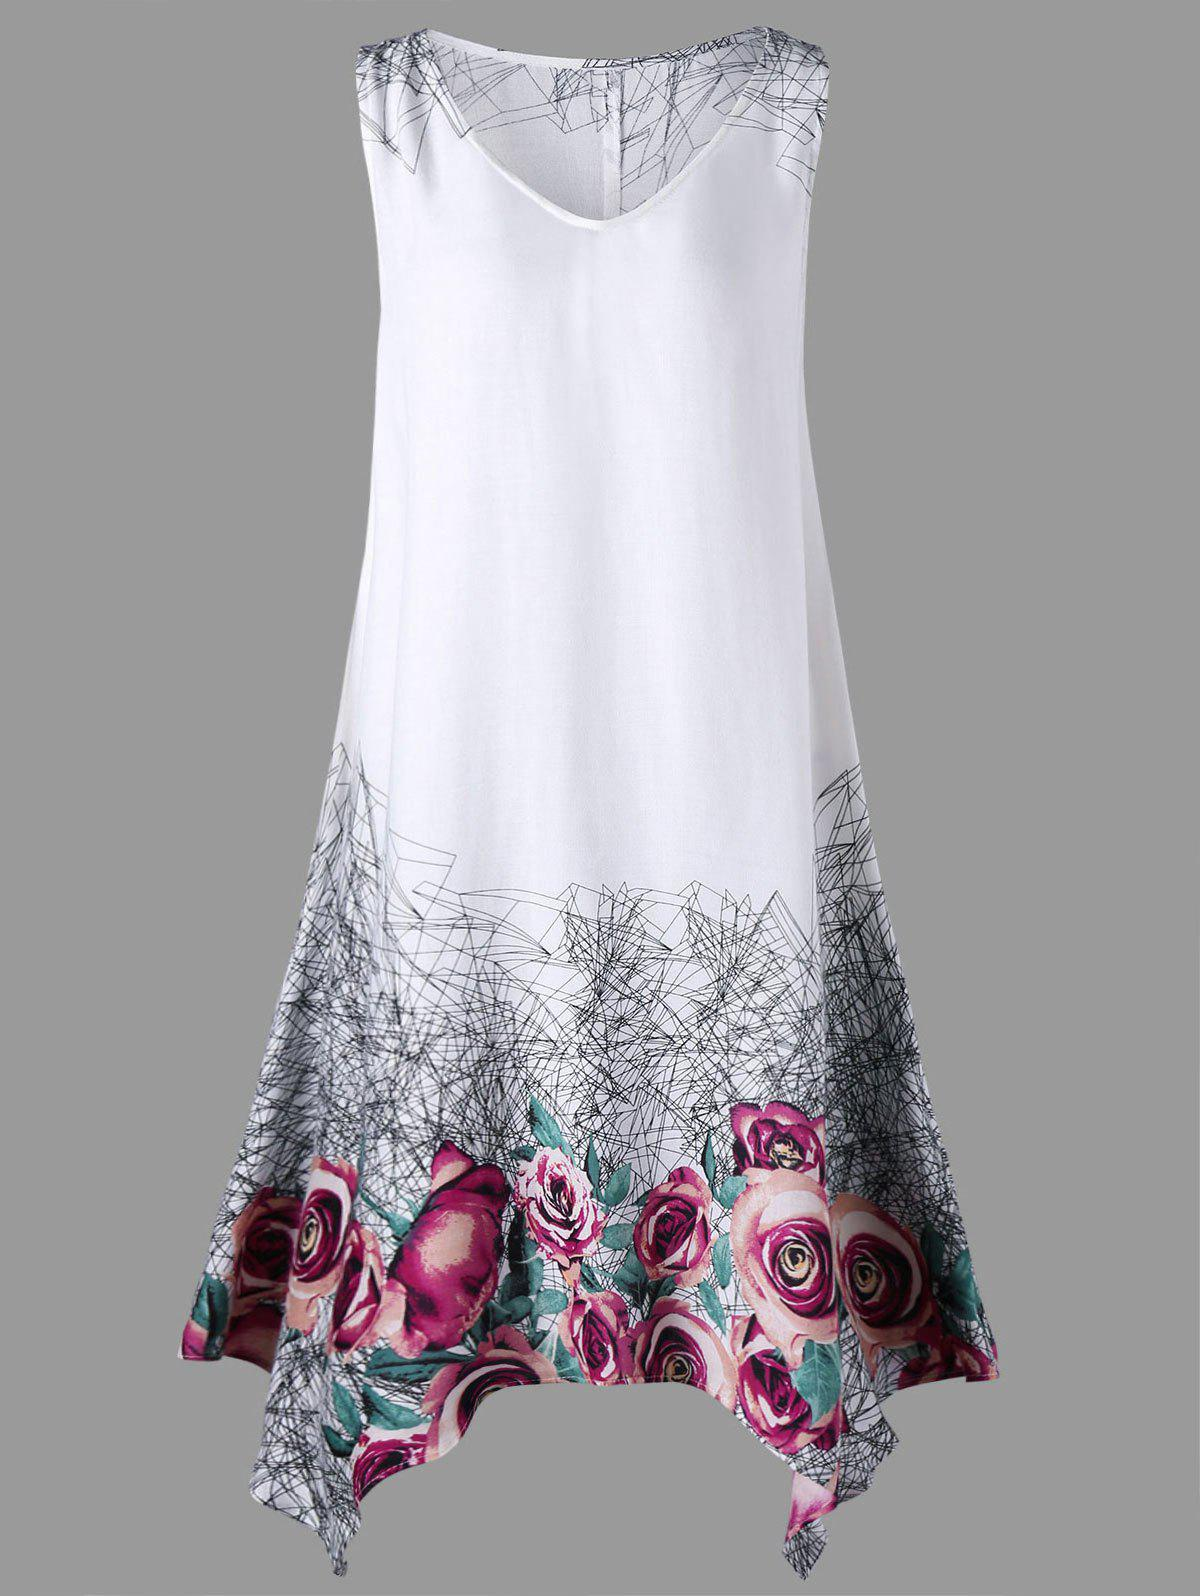 Floral Plus Size Handkerchief Tank DressWOMEN<br><br>Size: XL; Color: WHITE; Style: Casual; Material: Rayon; Silhouette: A-Line; Dresses Length: Mini; Neckline: V-Neck; Sleeve Length: Sleeveless; Pattern Type: Floral; With Belt: No; Season: Summer; Weight: 0.2000kg; Package Contents: 1 x Dress;